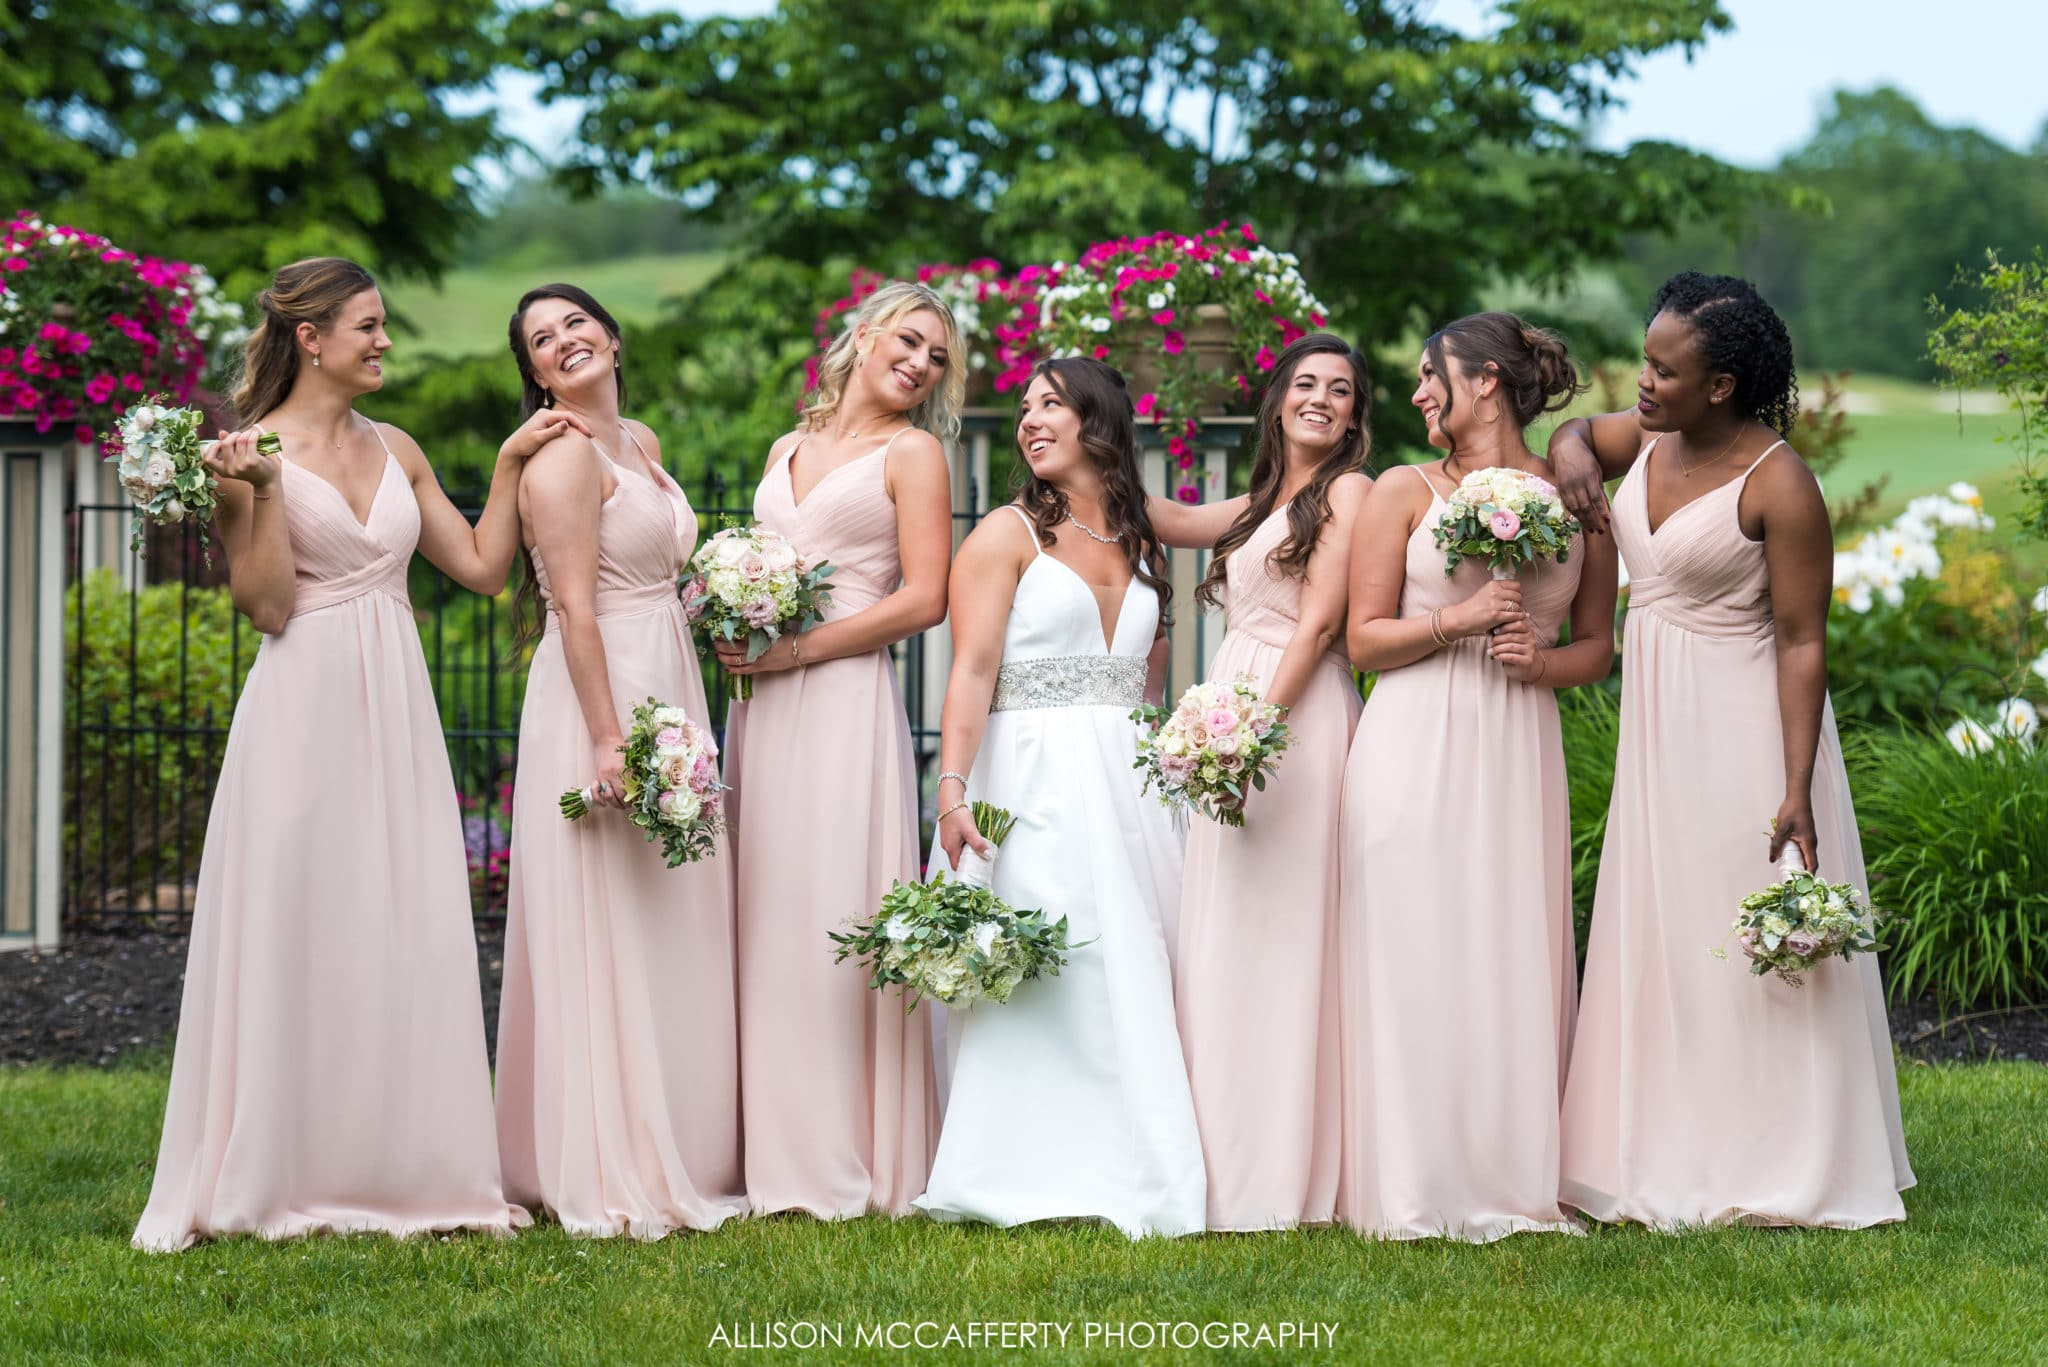 Bride and bridesmaids in the garden at Scotland Run Golf Club